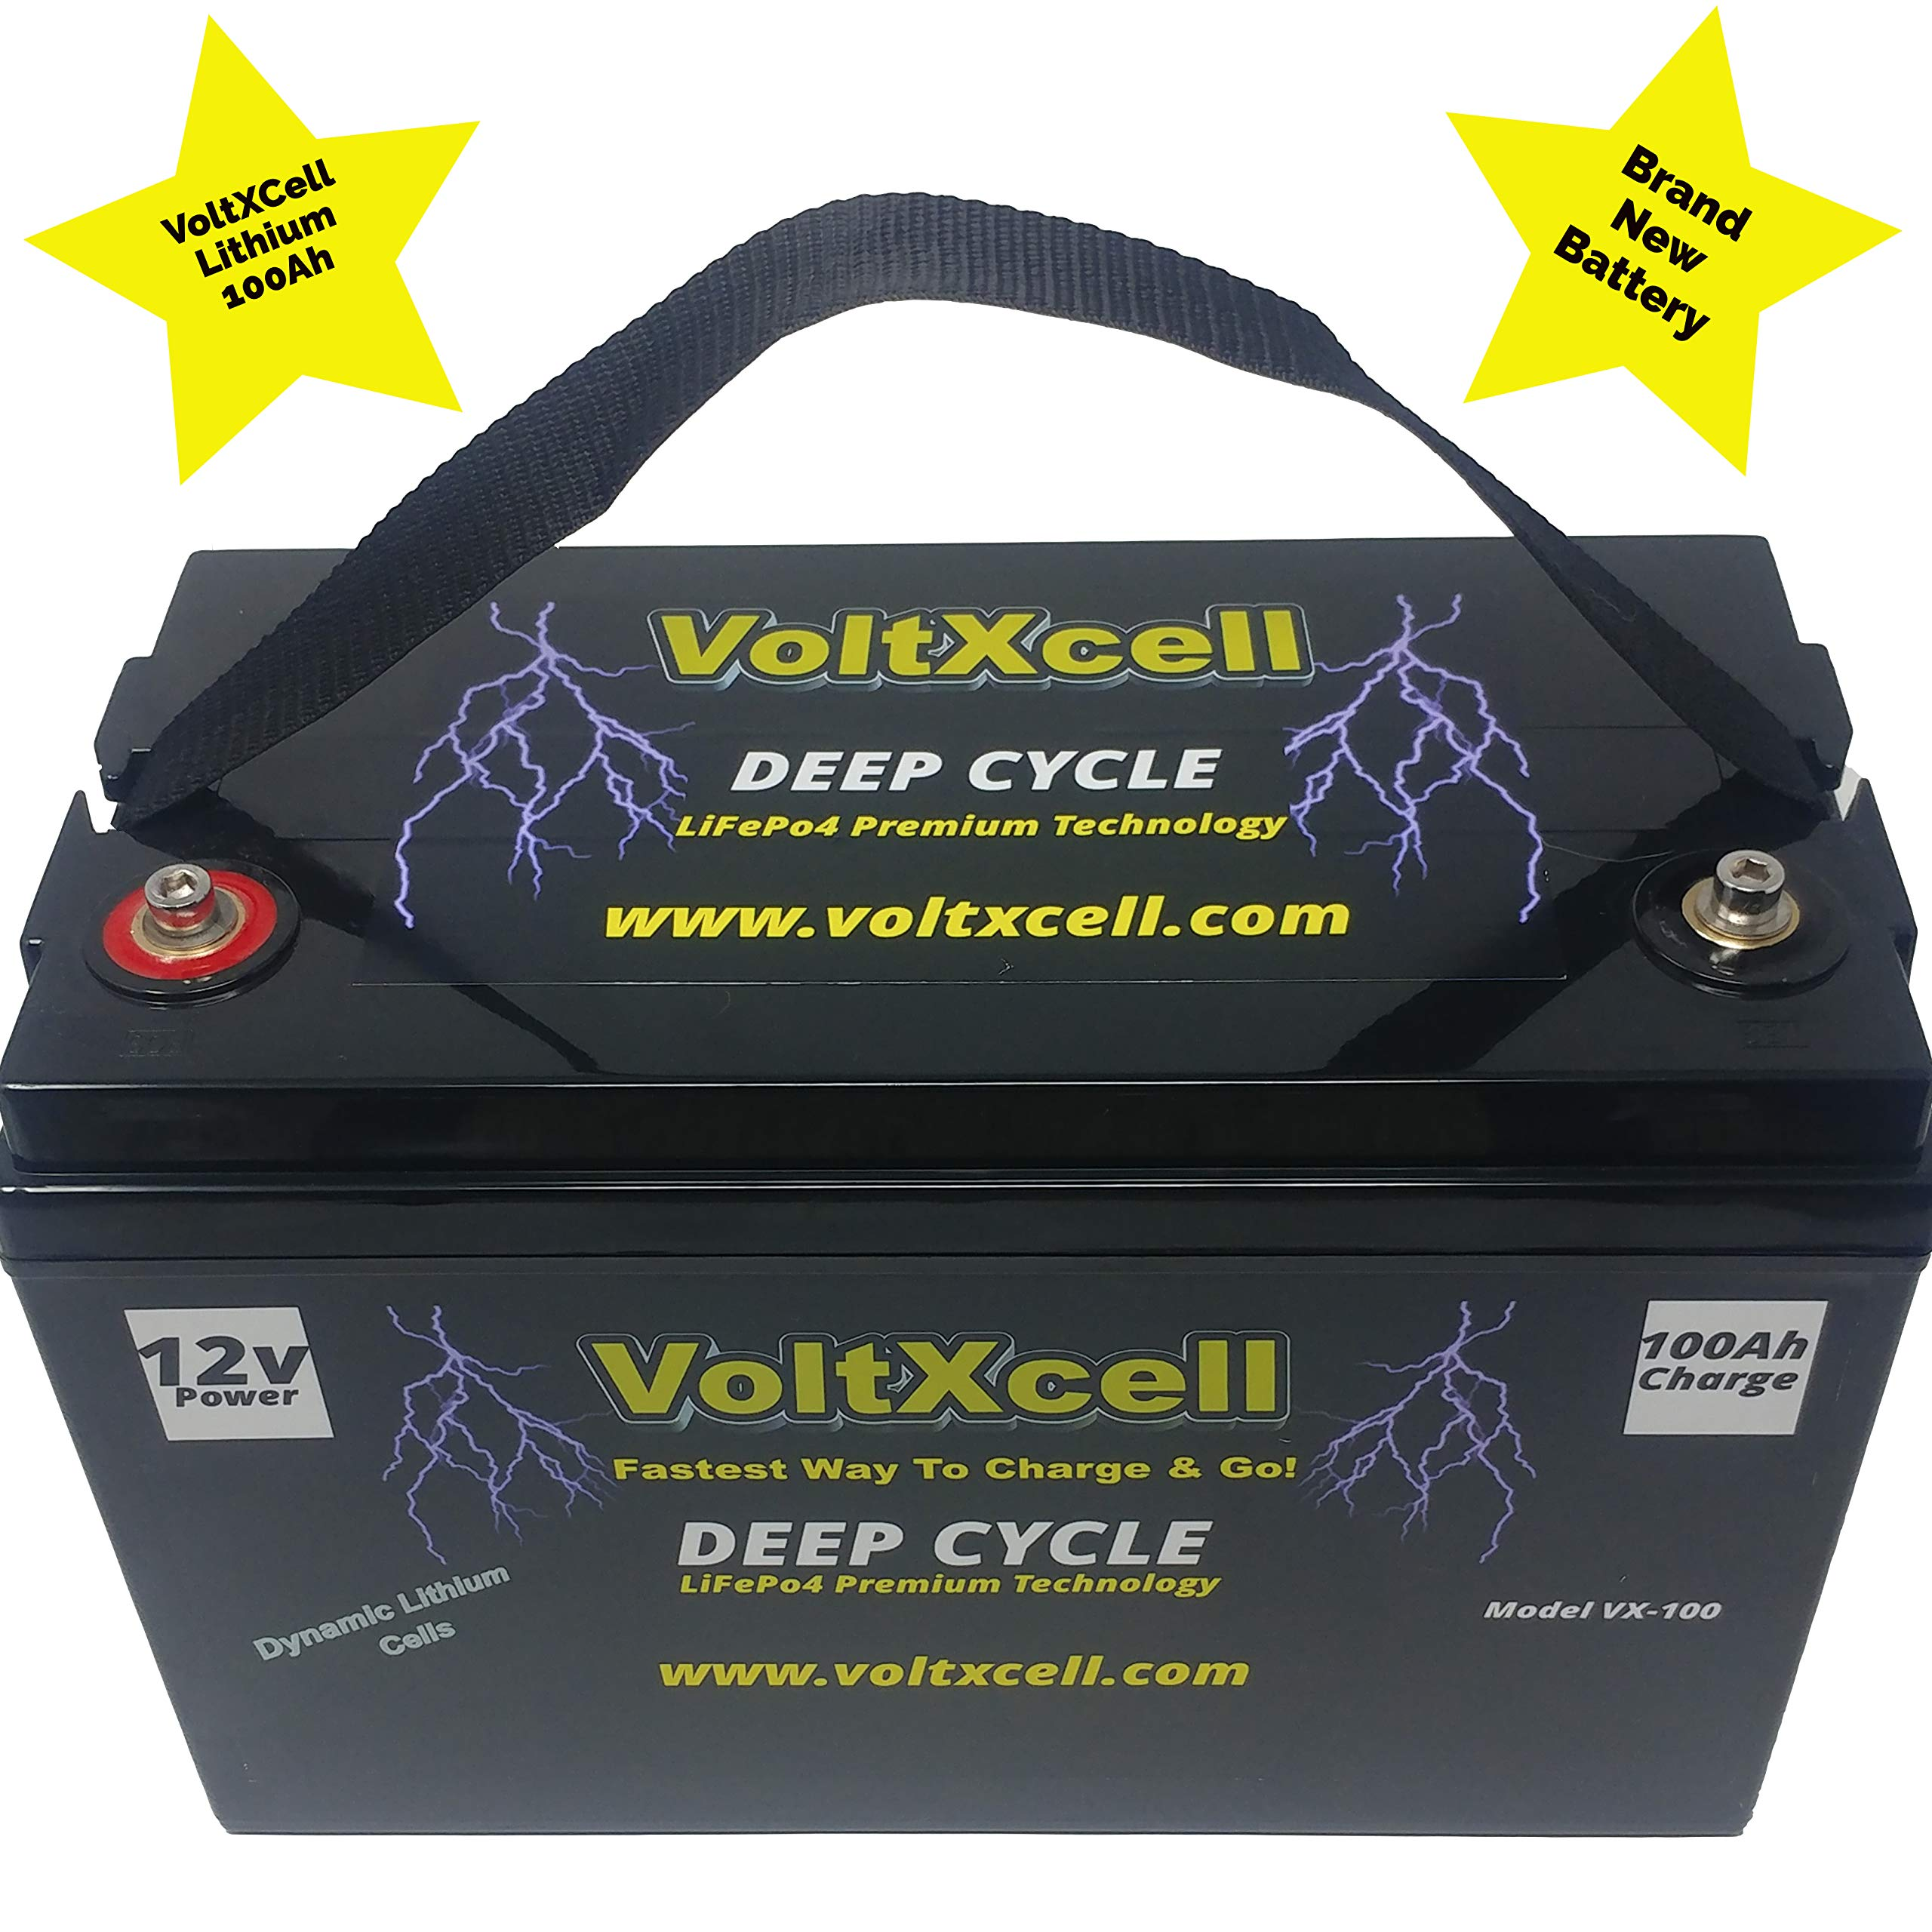 VoltXcell Lithium 100ah Battery LifePo4 12v Solar Wind Marine Boat Deep Cycle 12 Volt BMS Included Off Grid for Storage Rv Camping Home Car Audio